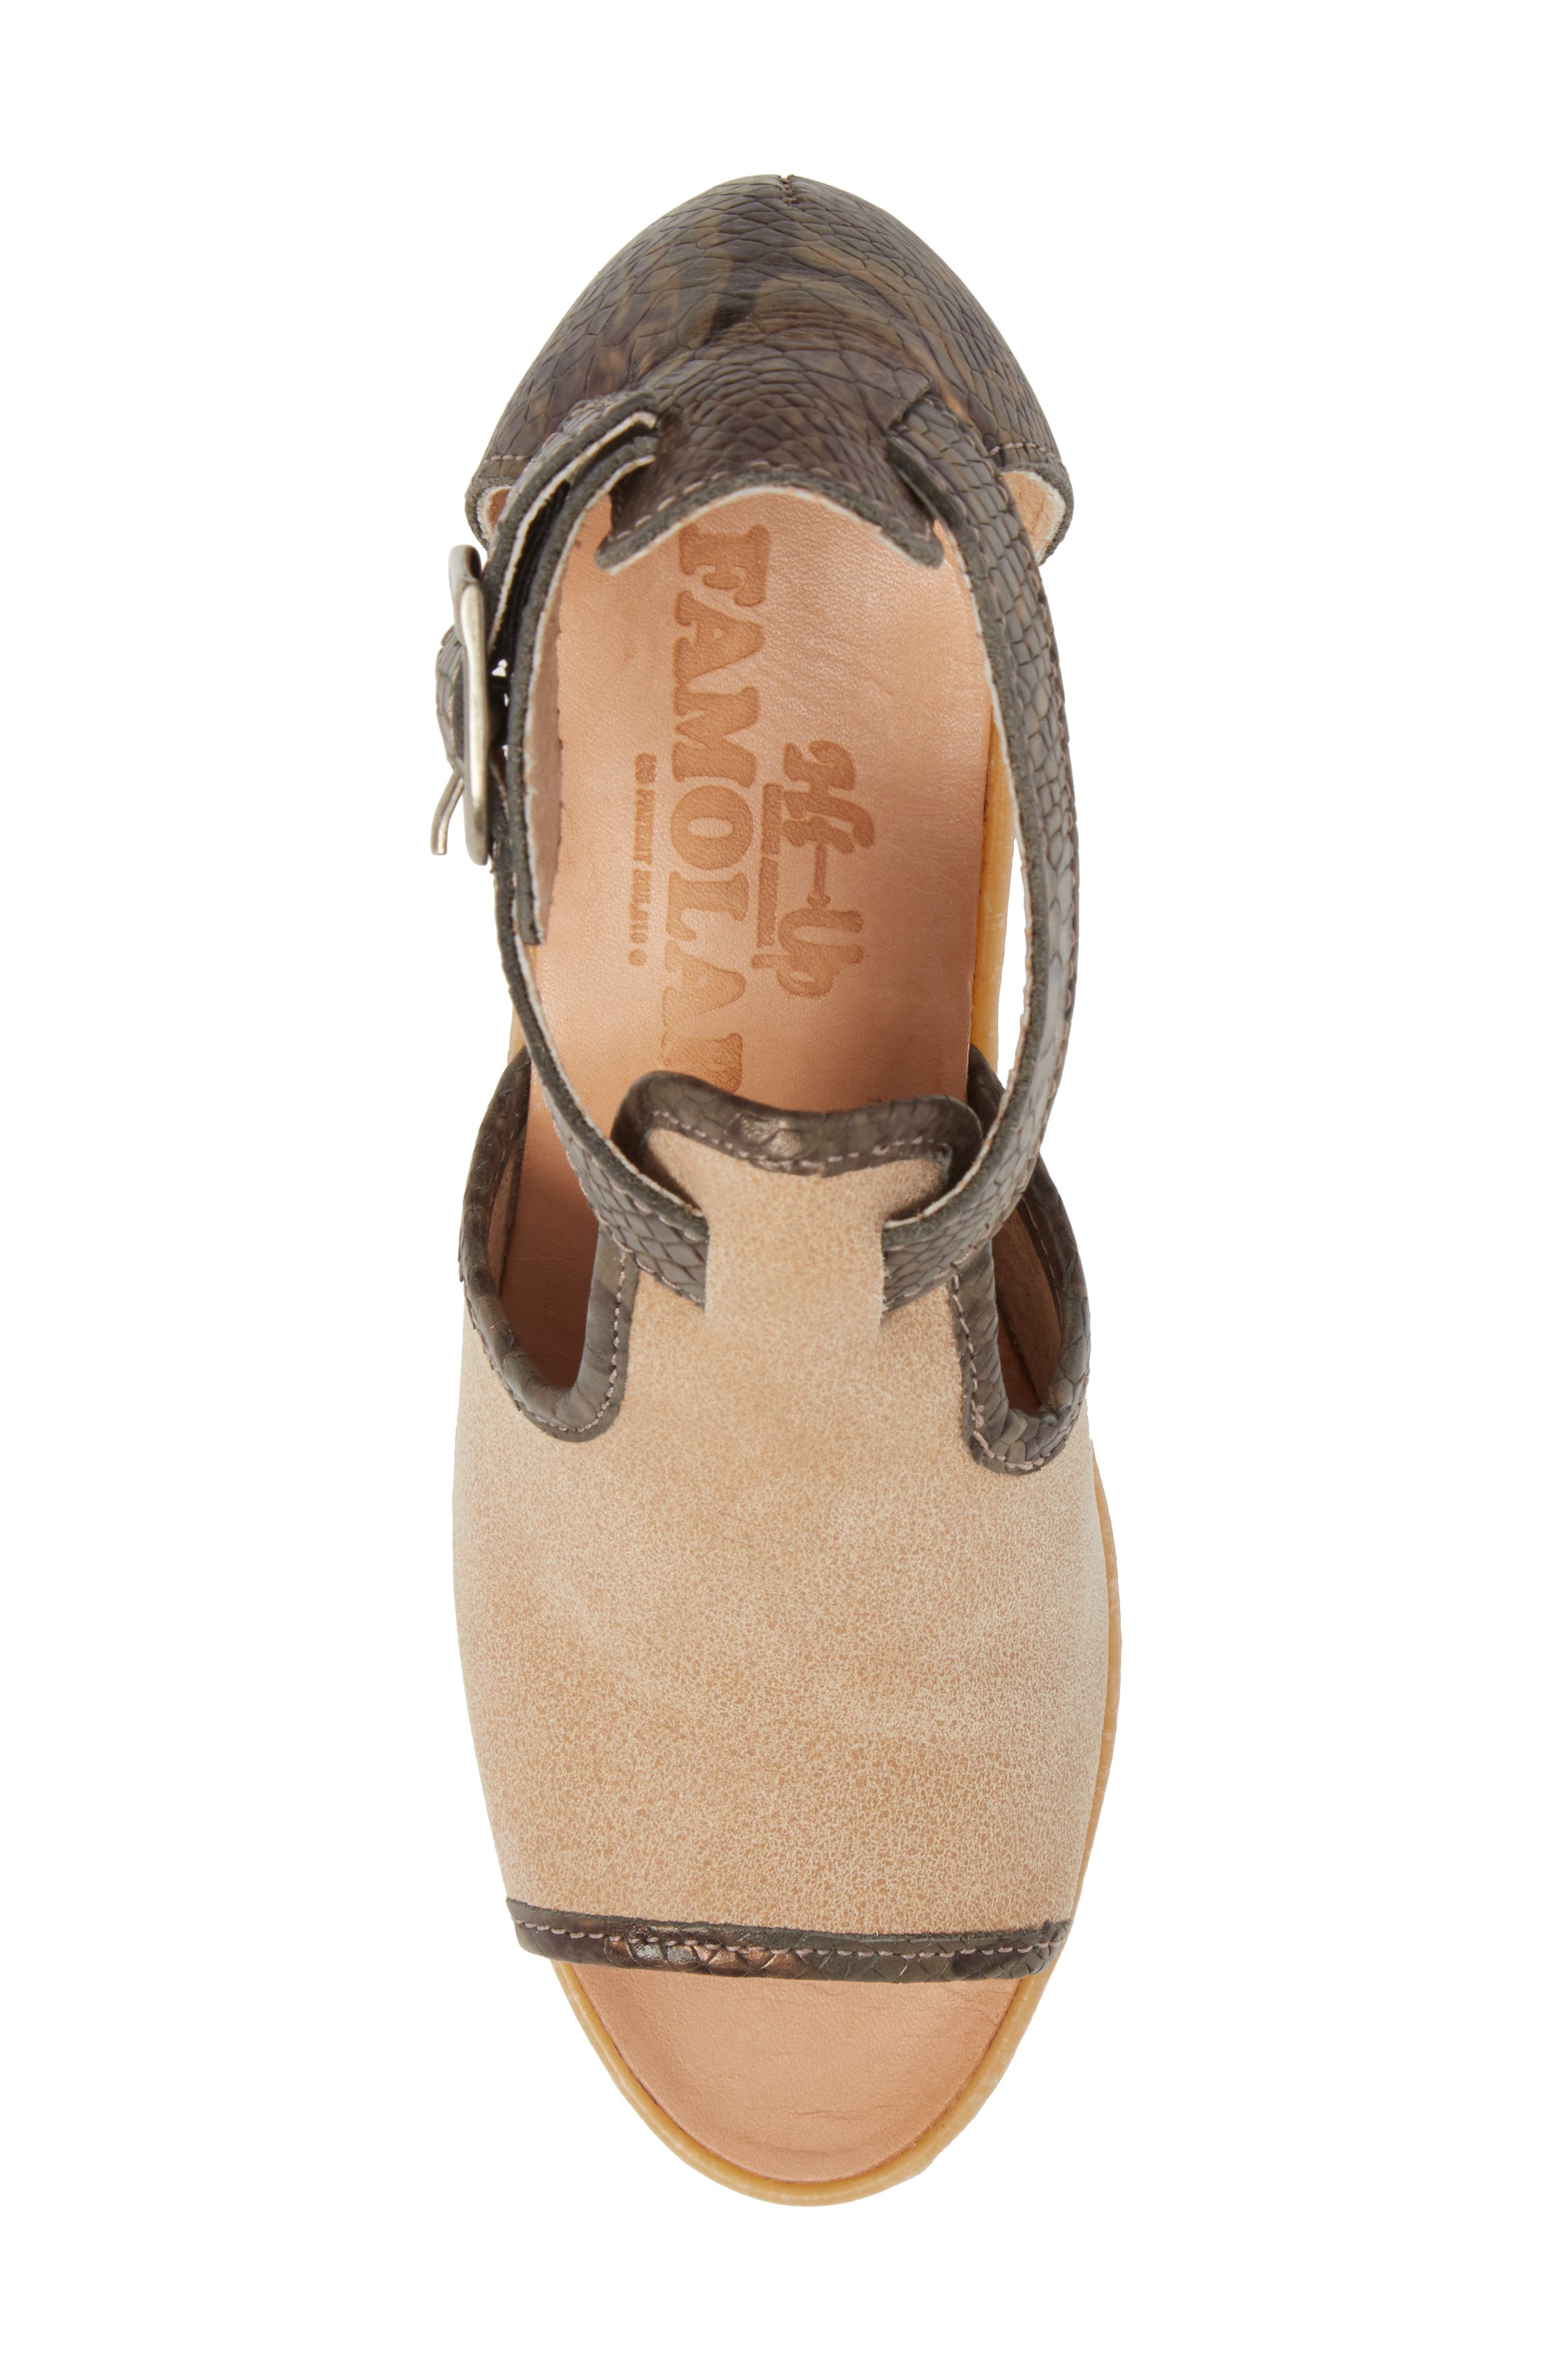 Queen Bee Wedge Sandal,                             Alternate thumbnail 5, color,                             Nude Mix Leather